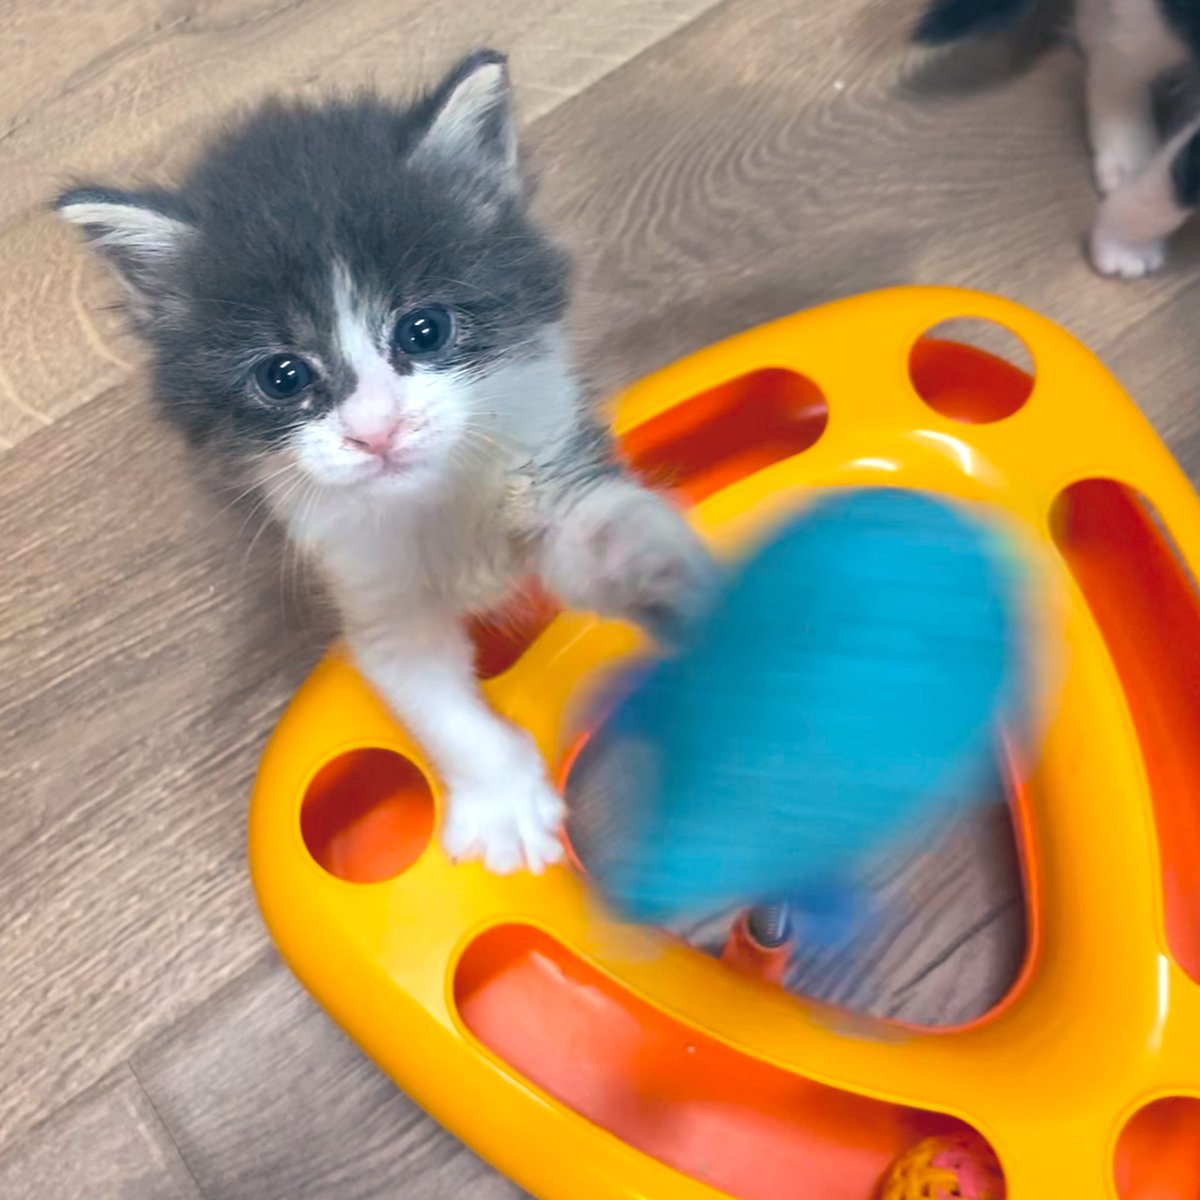 This thing is COOL! #TedLasso #kittens #CatsOfTwitter #MondayMotivation